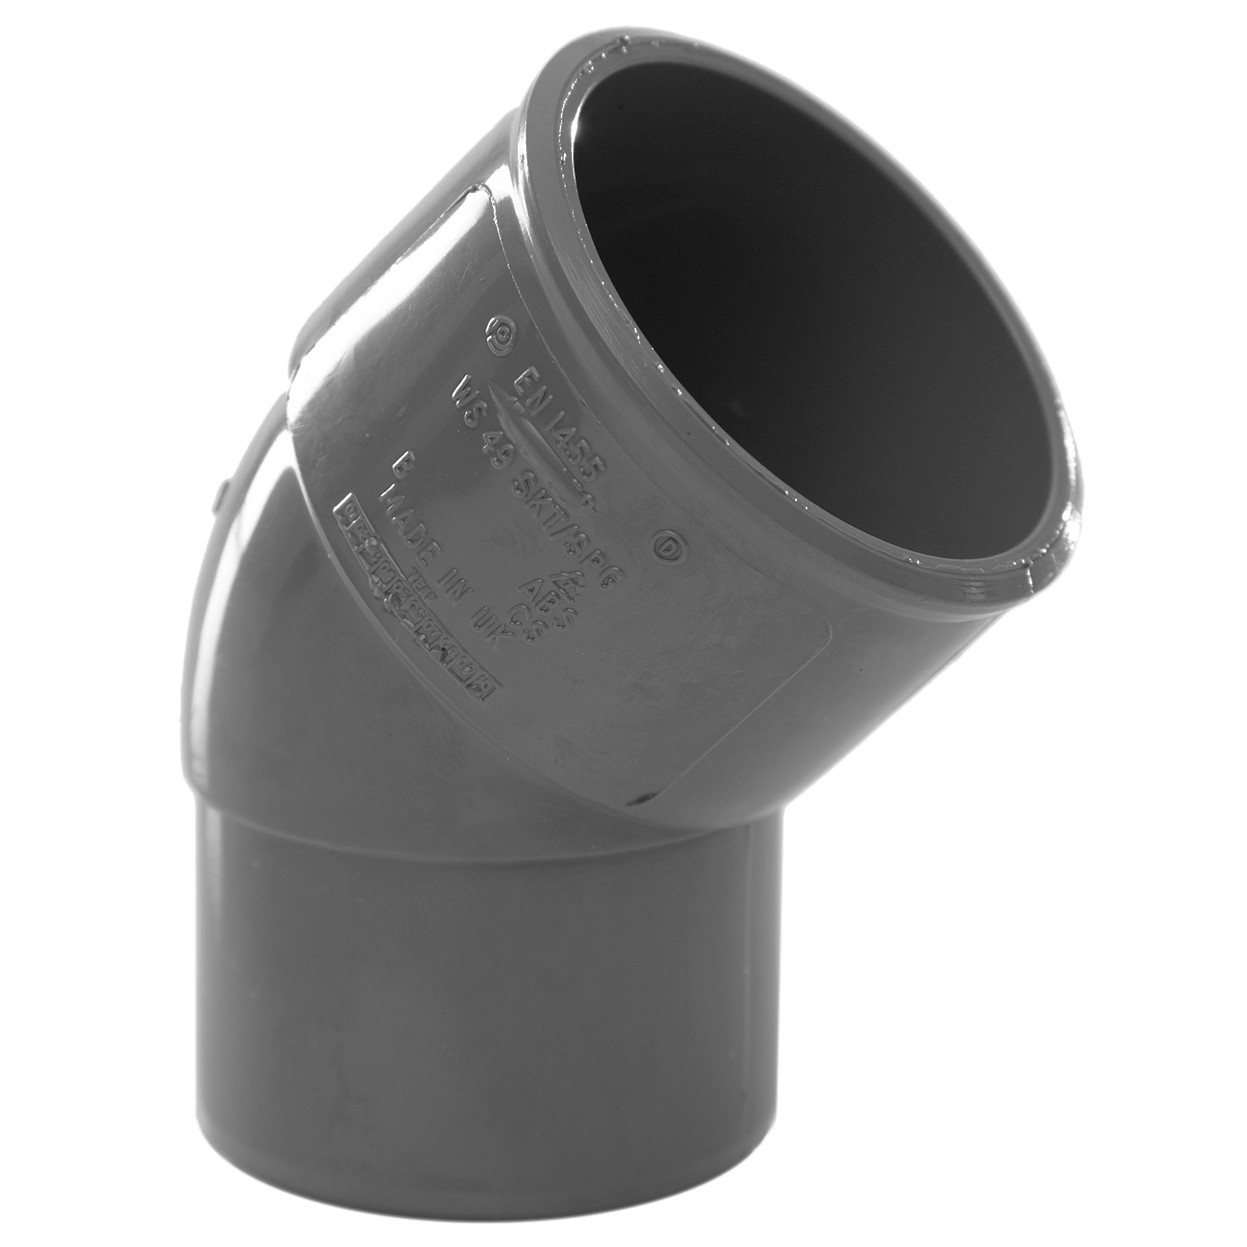 Polypipe 40mm Solvent Weld Waste 45 Degree Spigot Bend - Grey